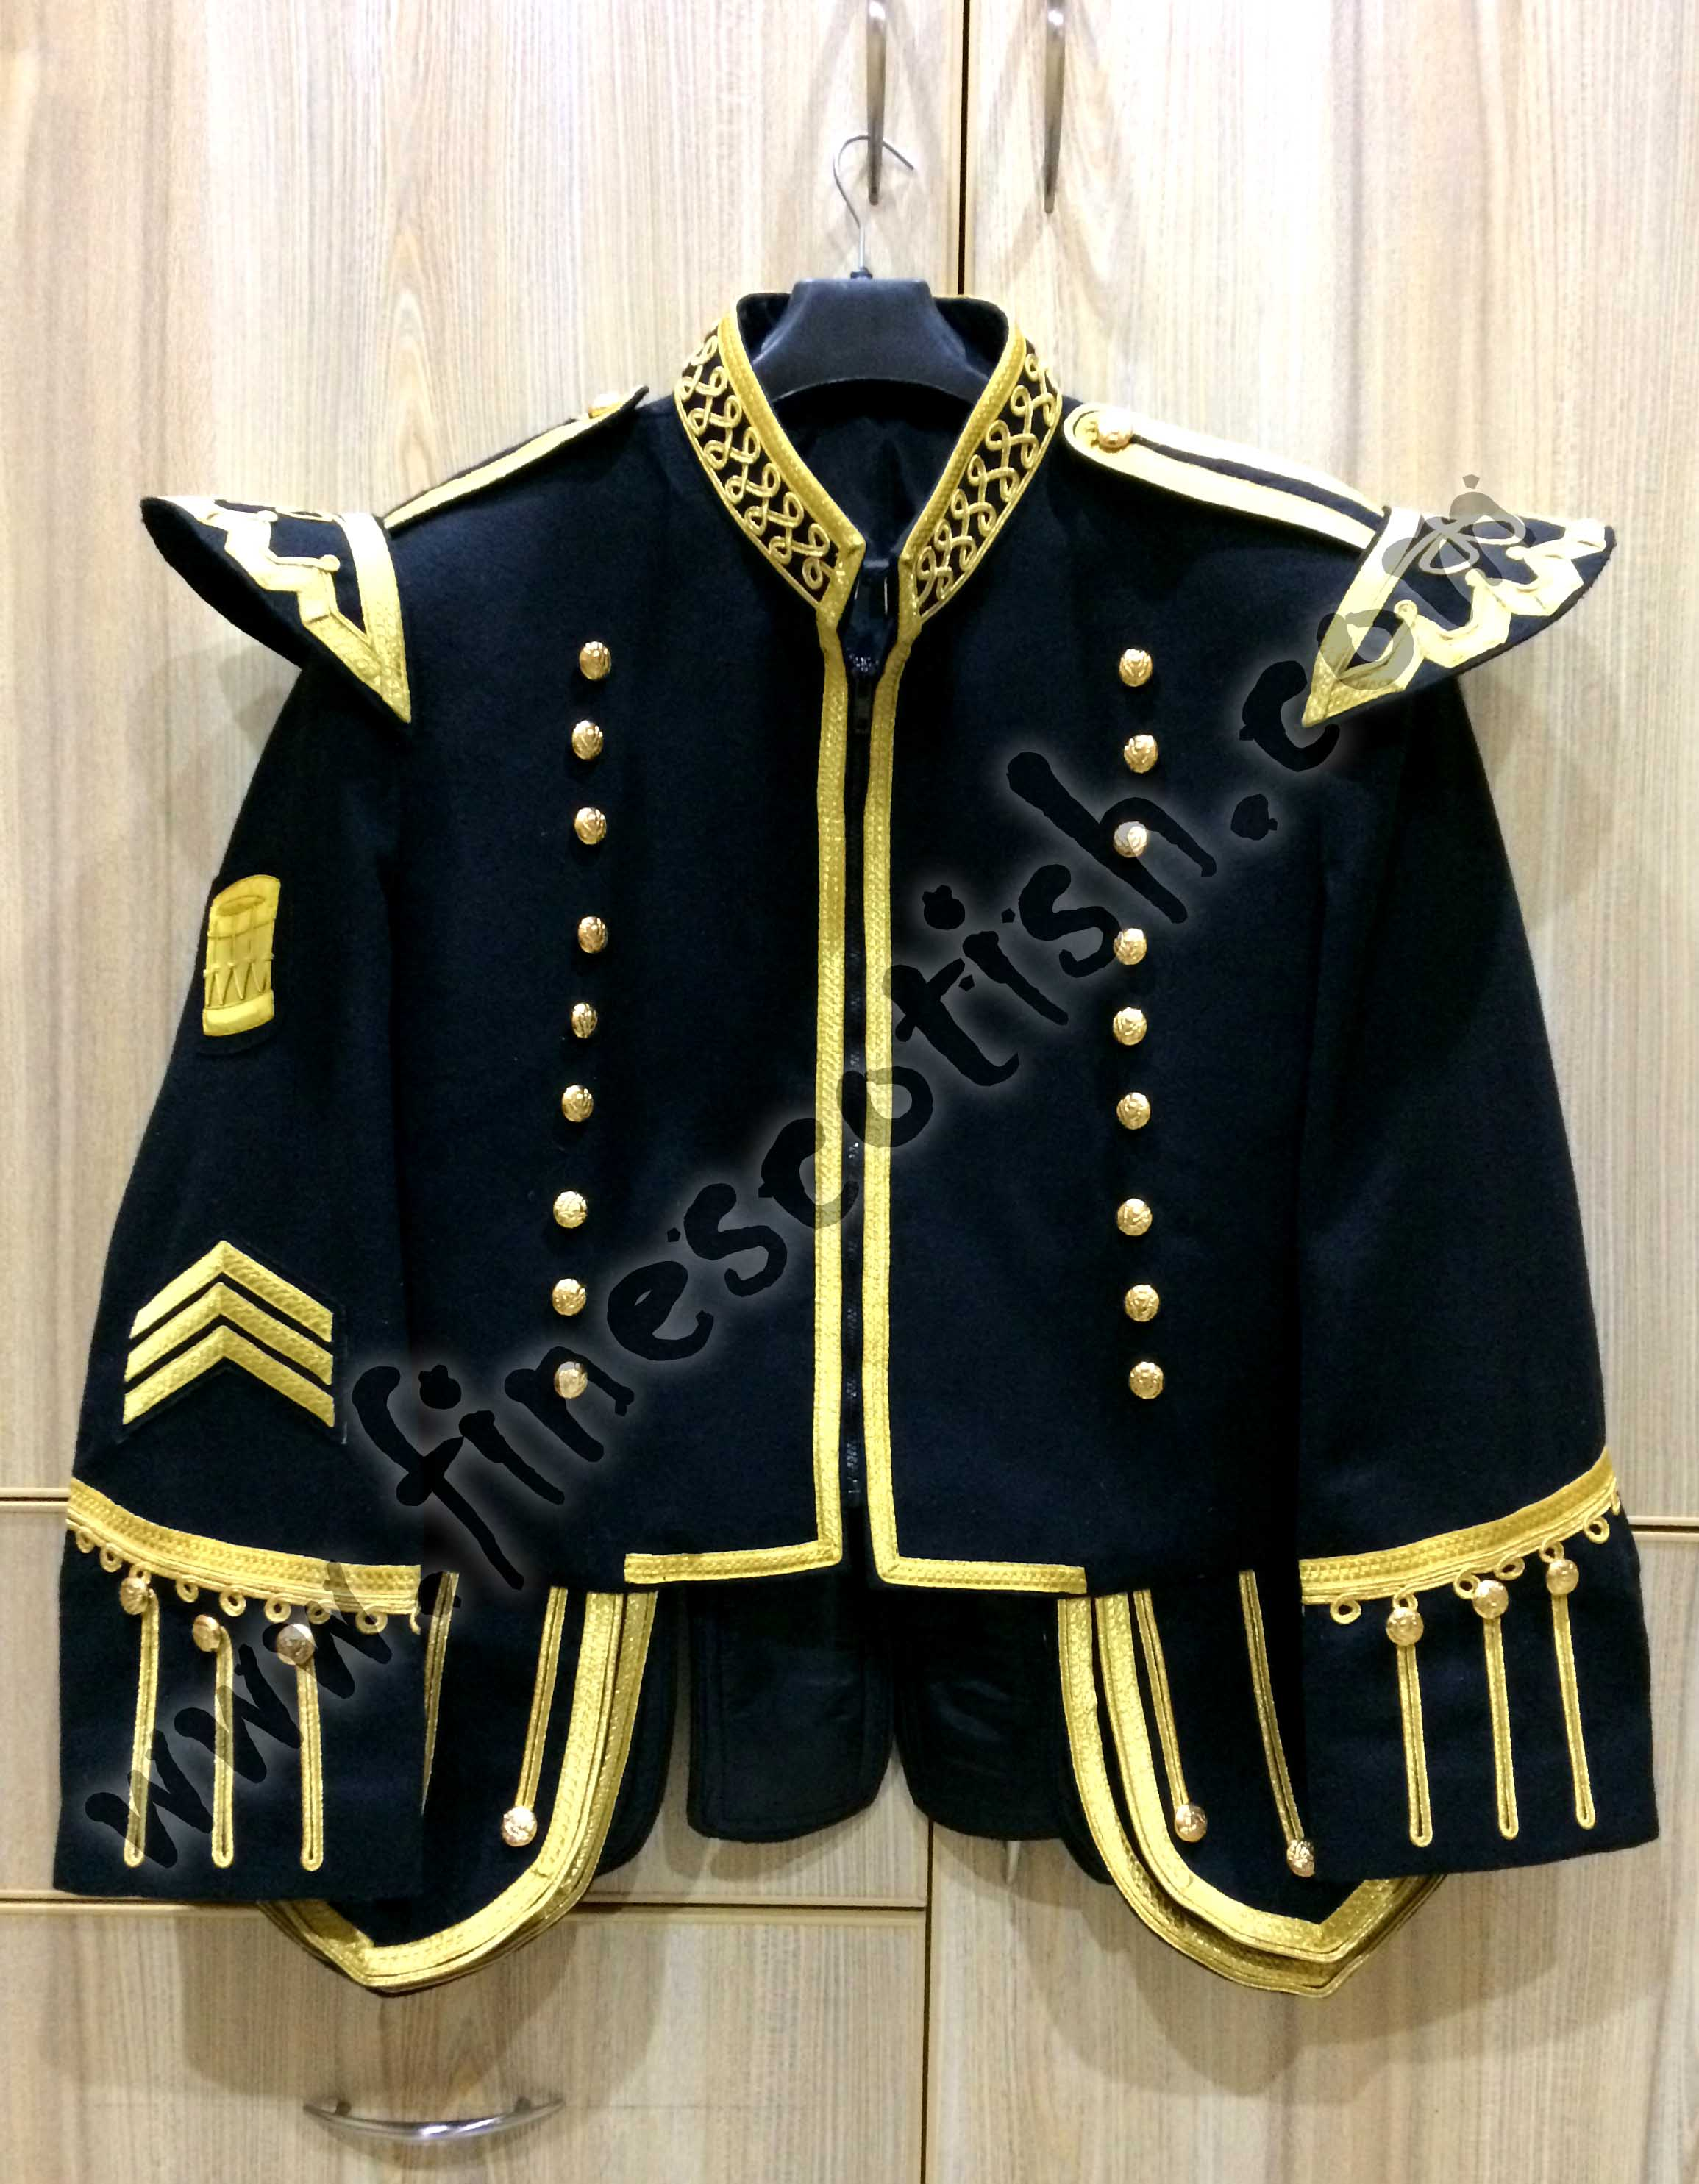 Military Doublet Jacket for Drum Major